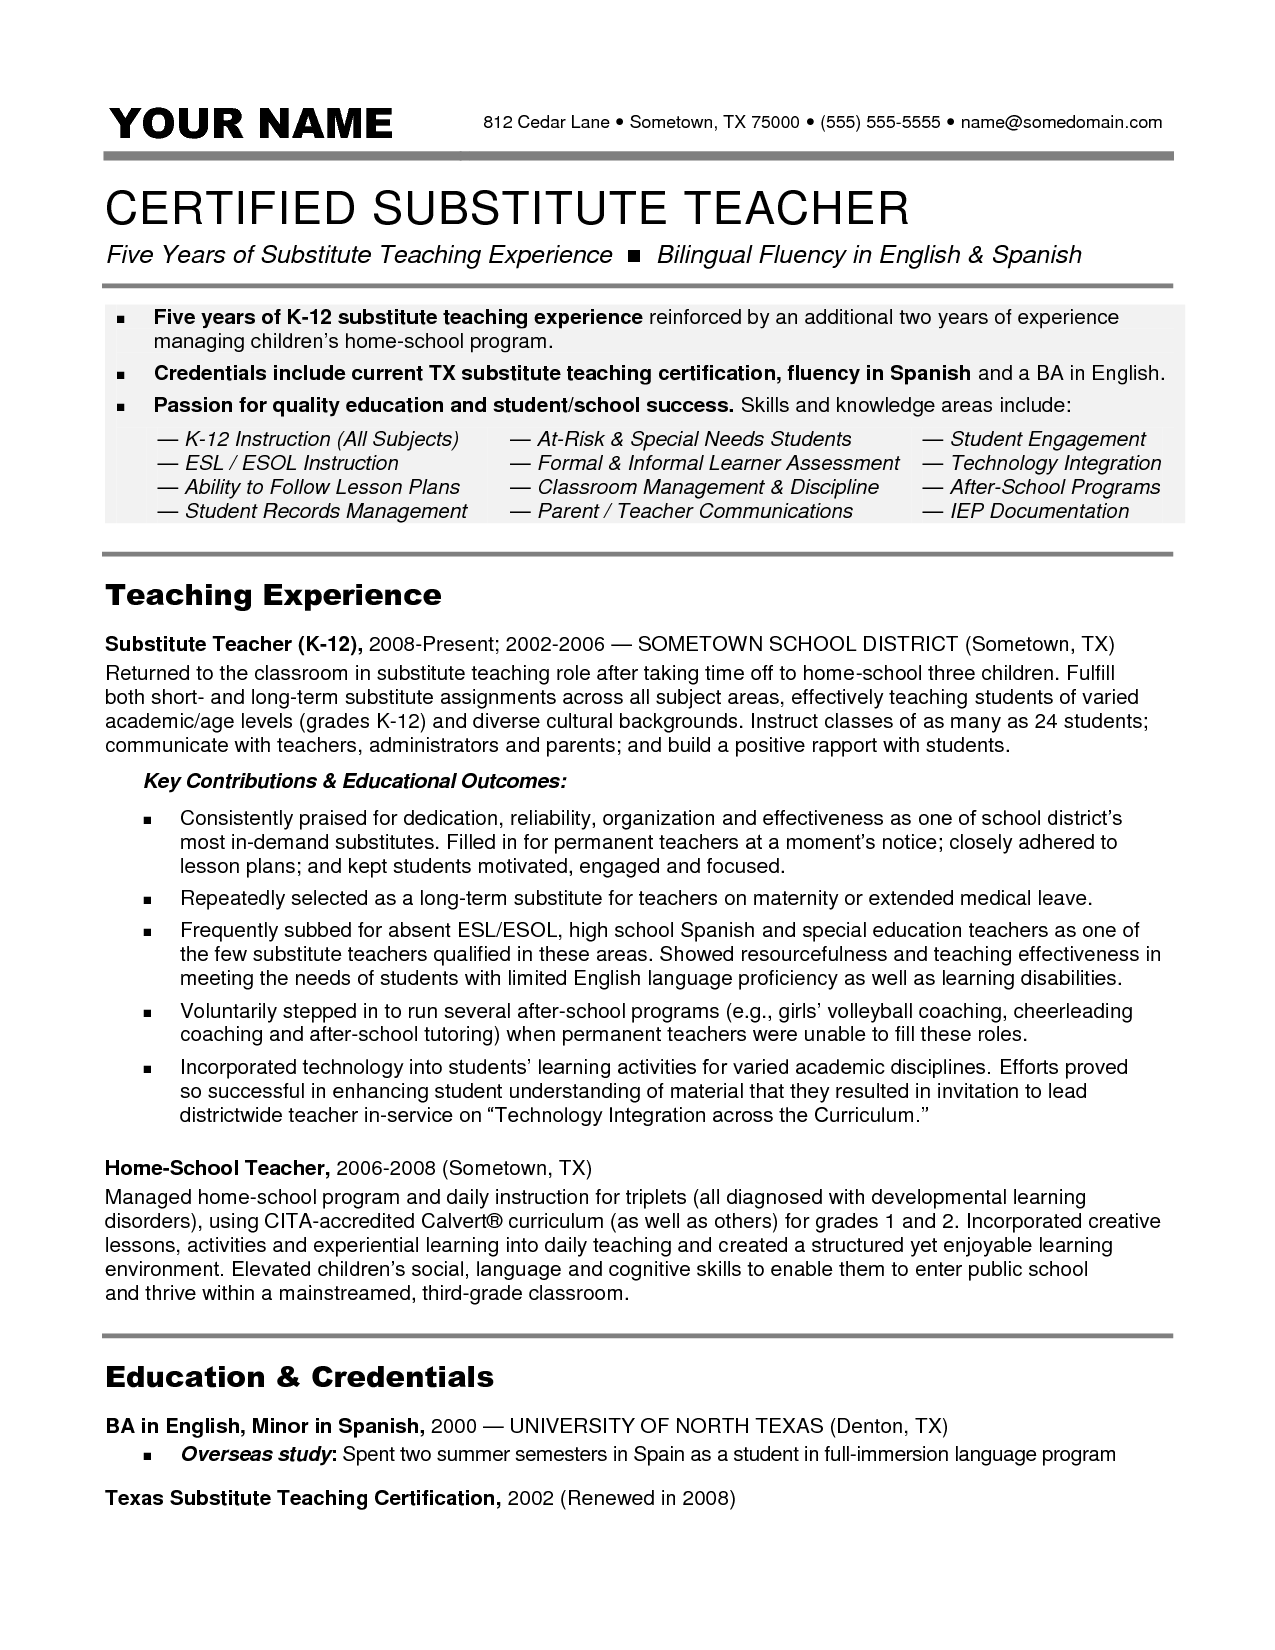 substitute teacher resume examples best business template job description for professional